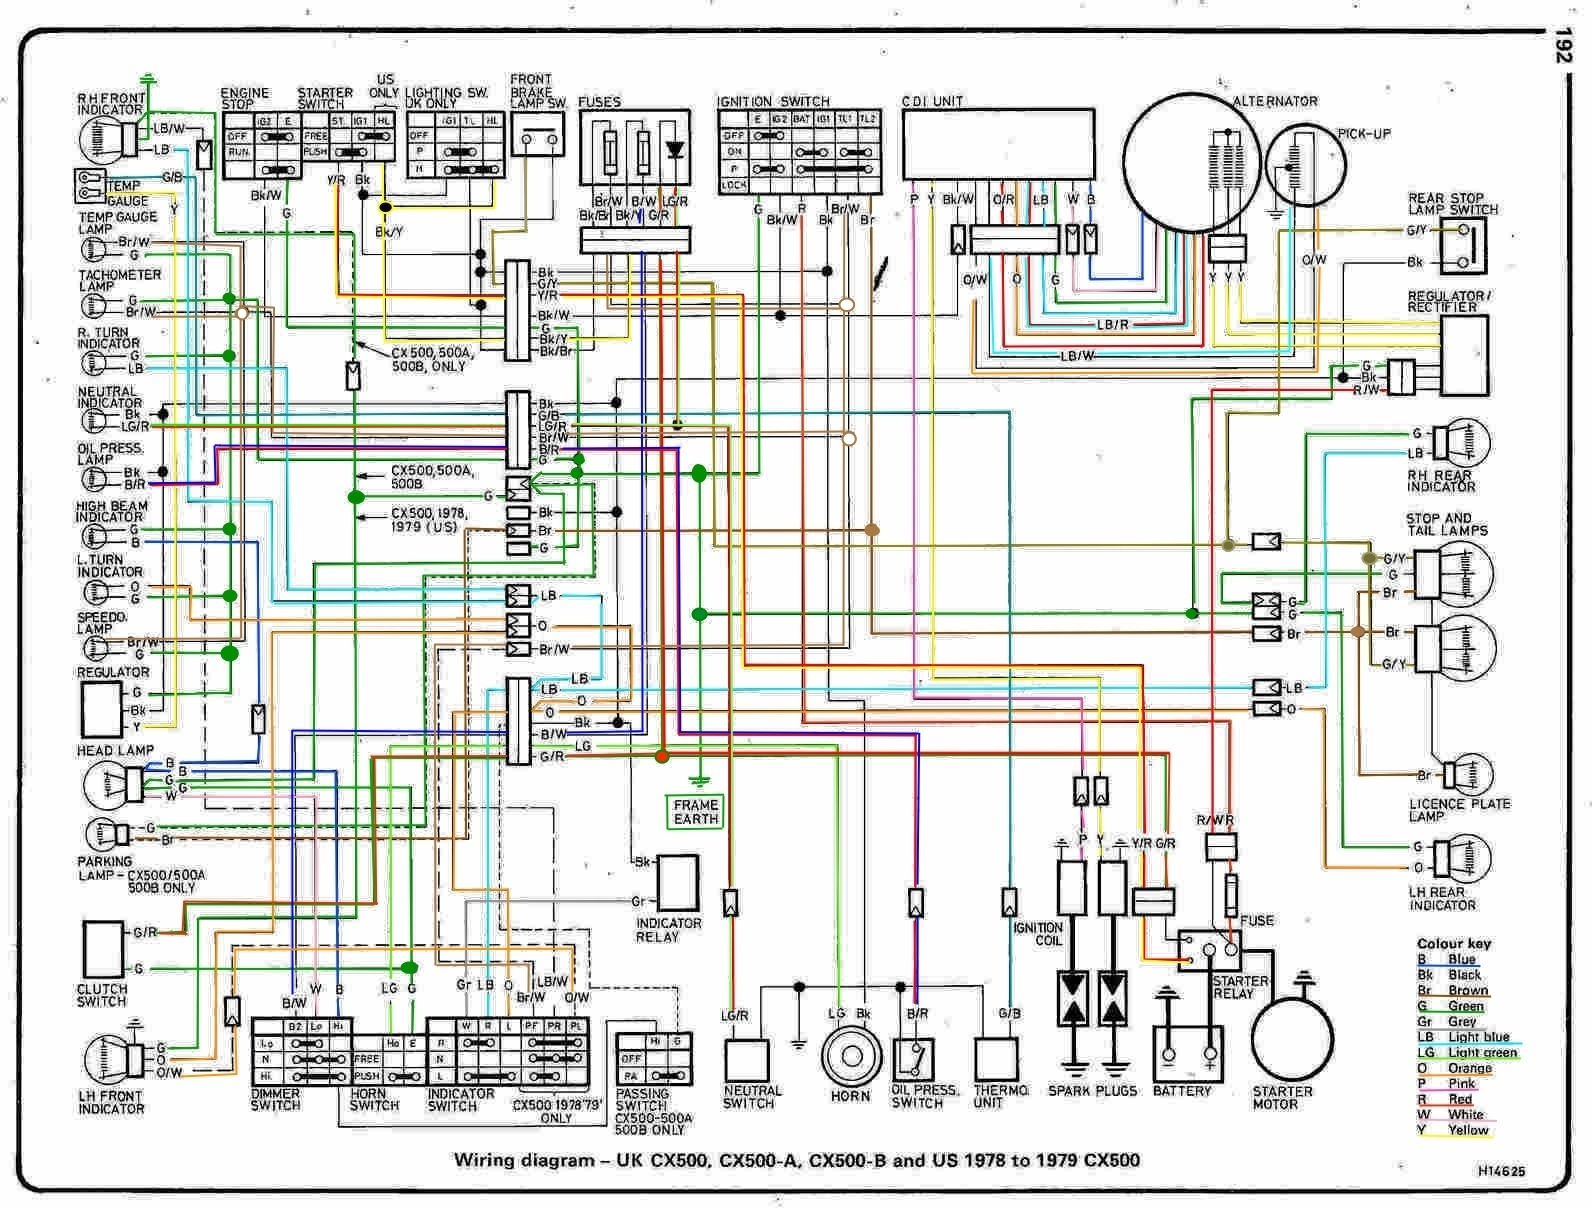 Fiat 40 F Wiring Diagram   have governm The Wiring Diagram   have ...